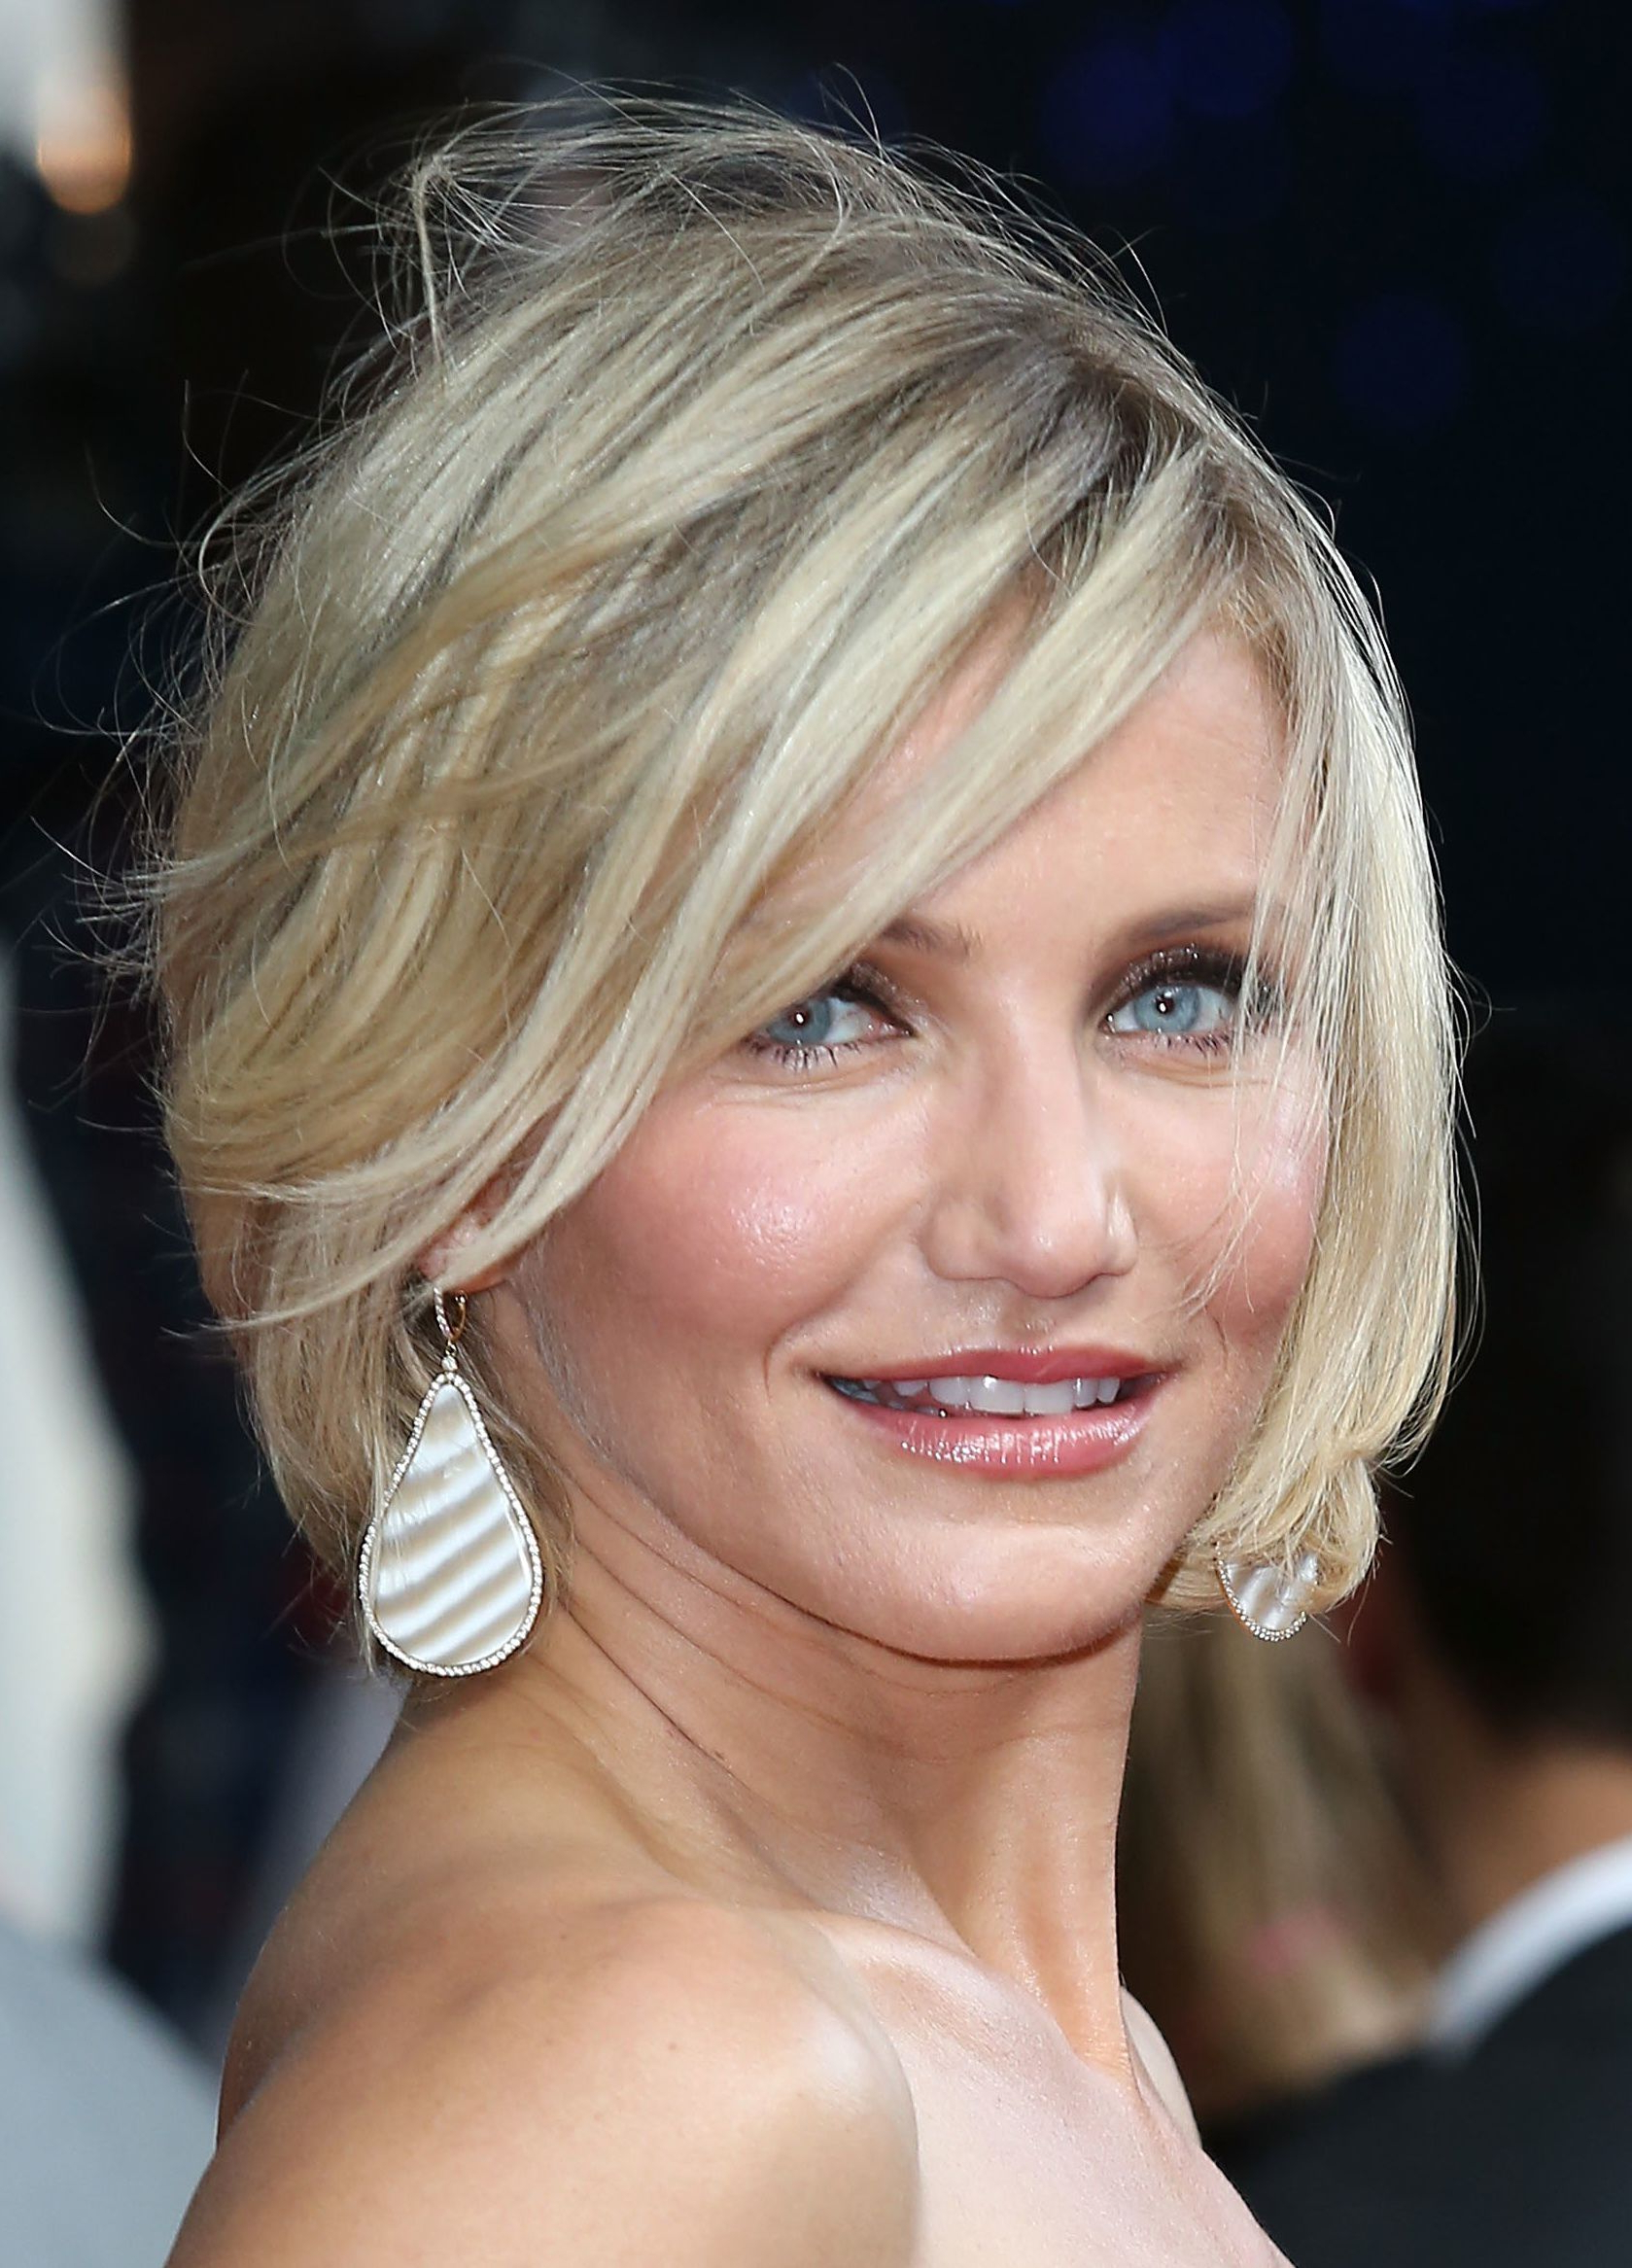 22 Inspiring Short Haircuts For Every Face Shape For Special Occasion Short Hairstyles (View 15 of 25)